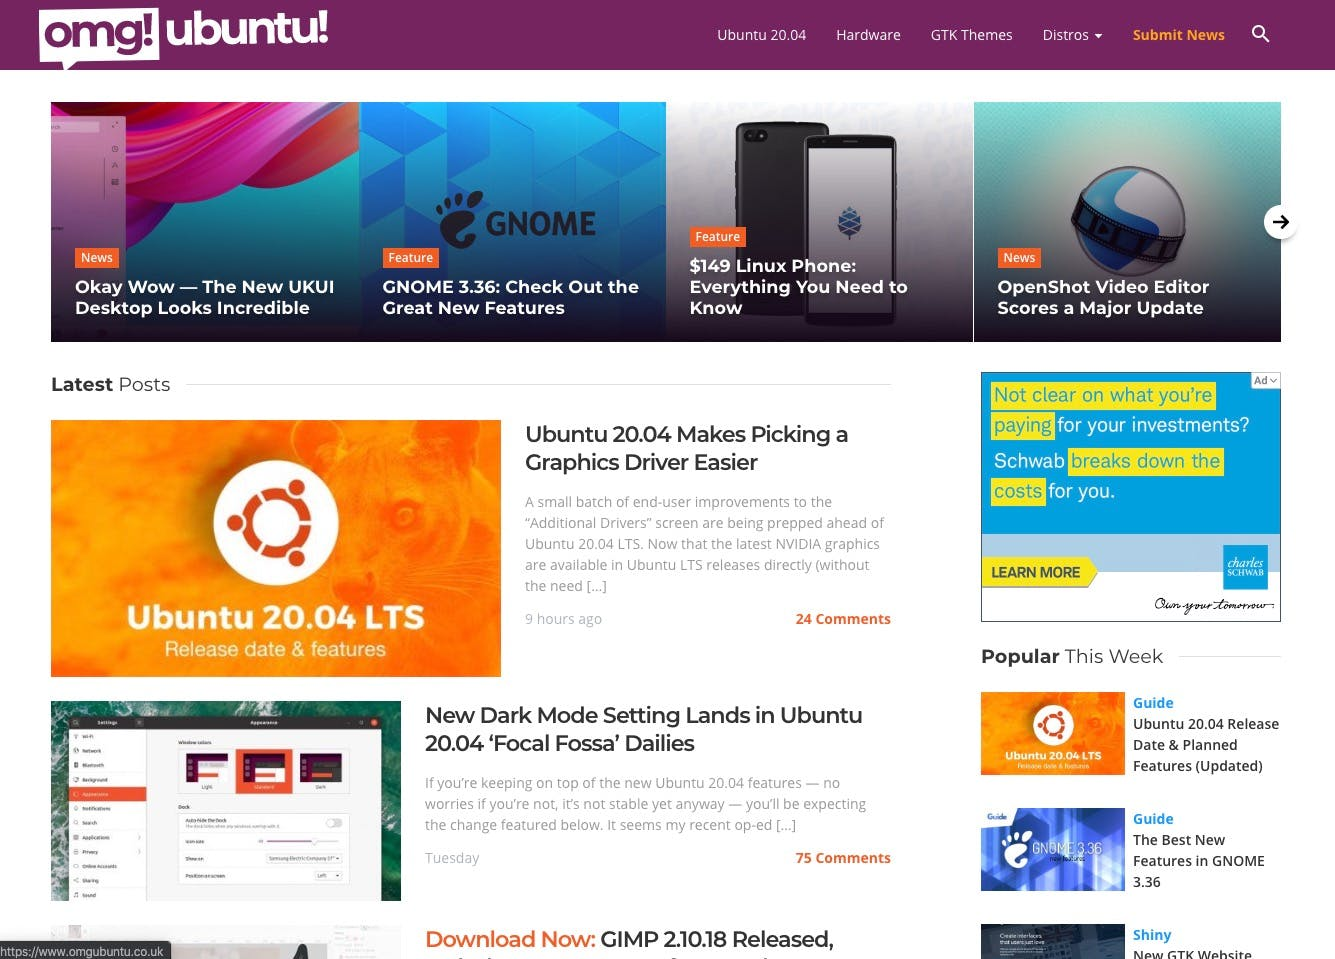 OMG! Ubuntu screenshot